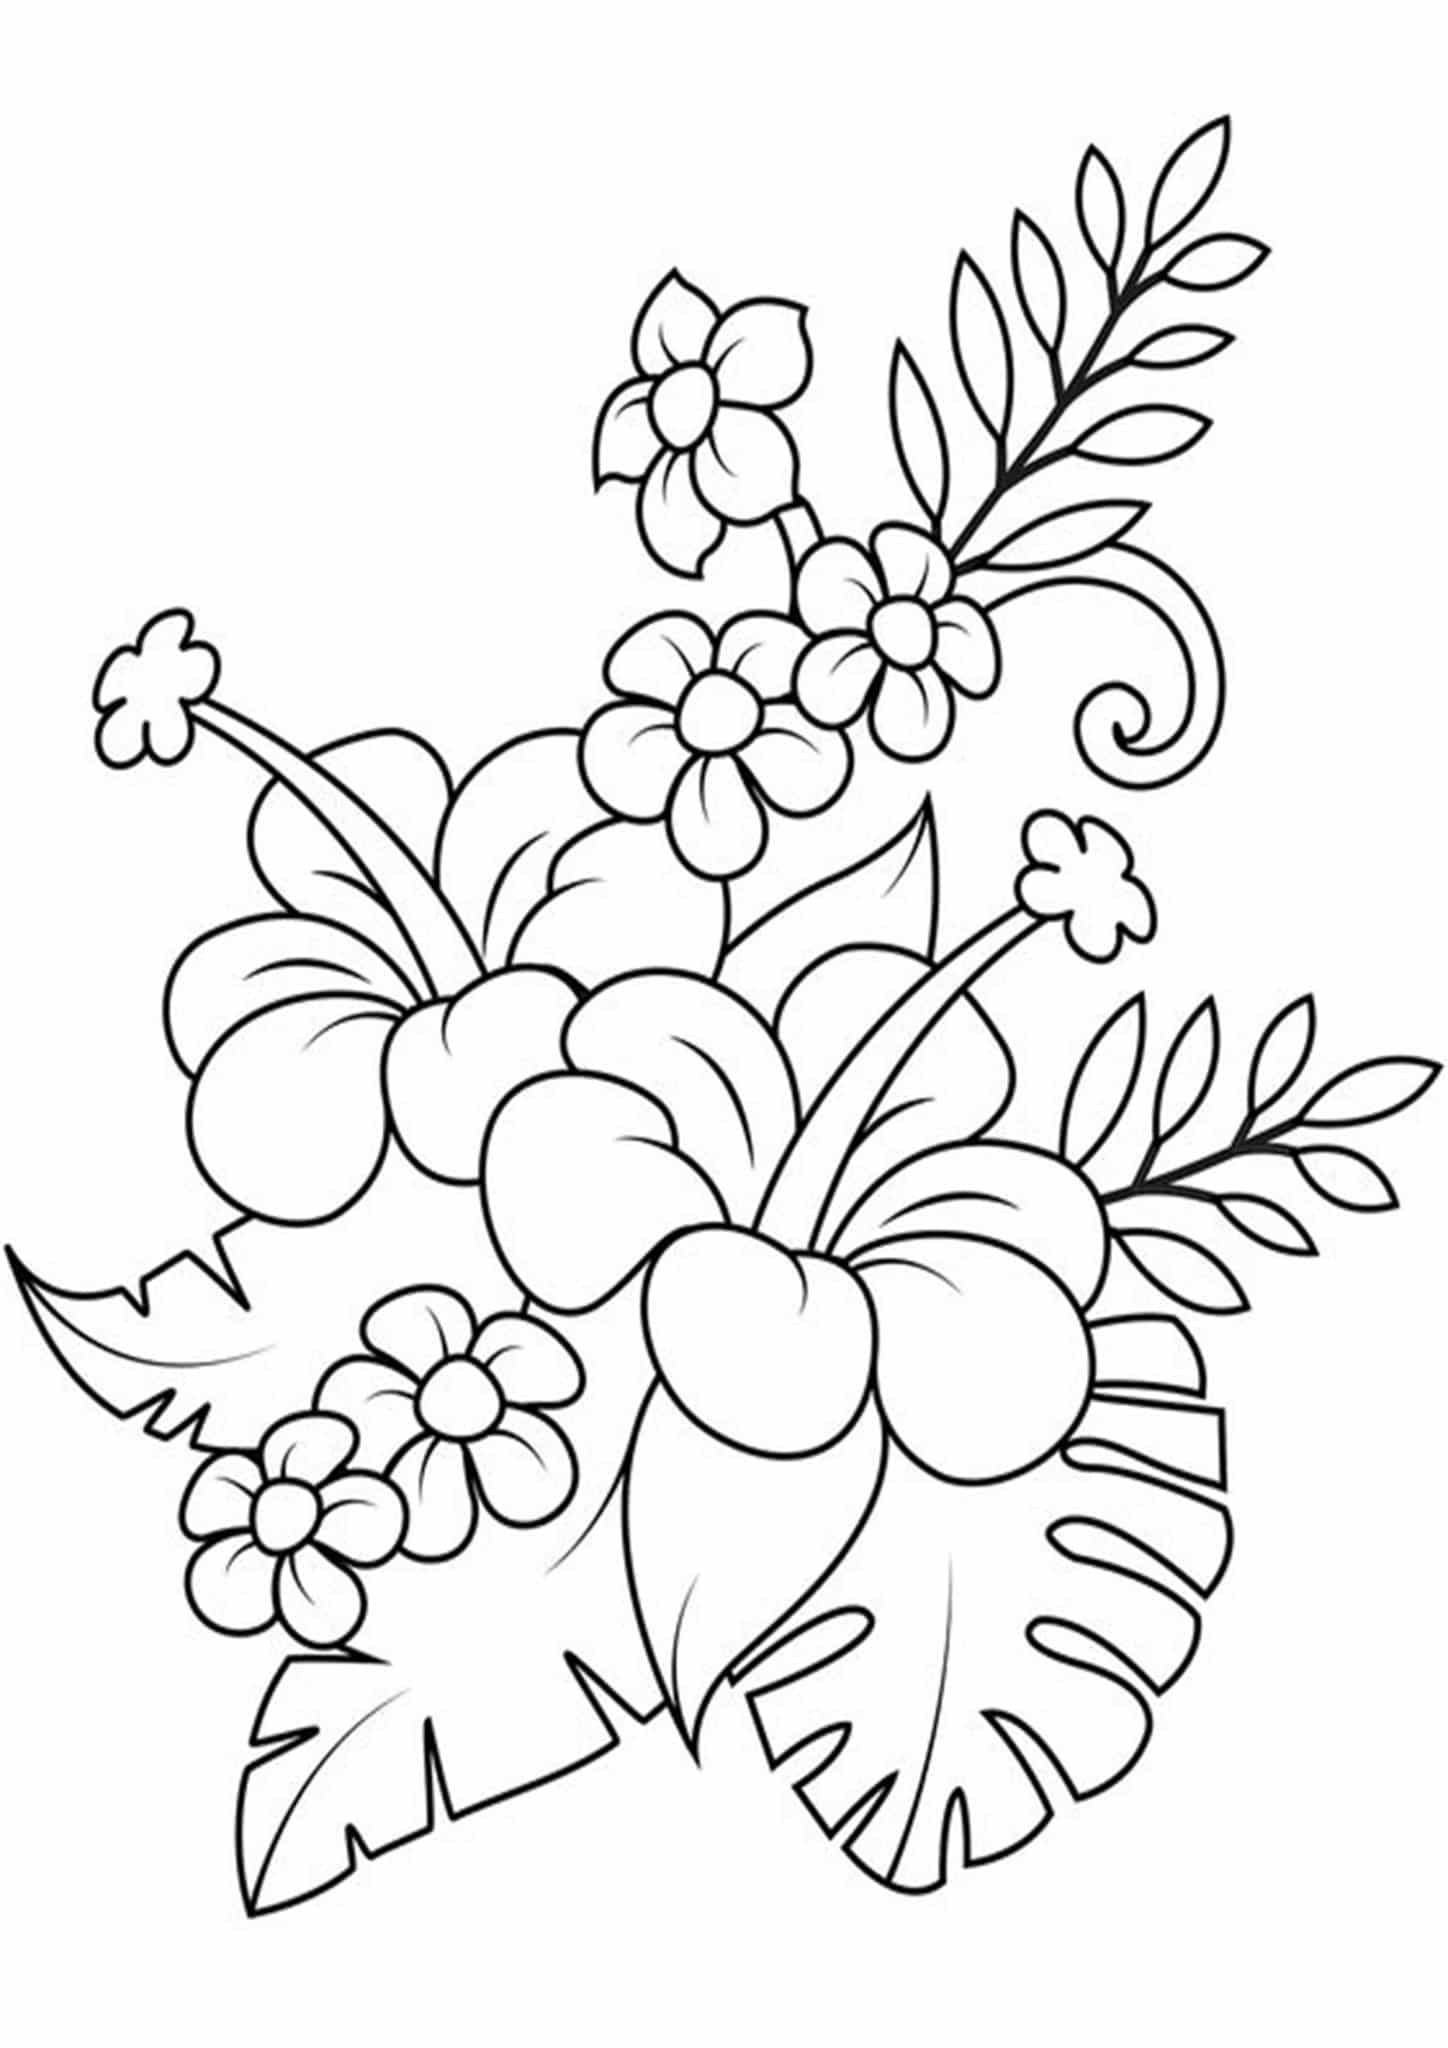 Free Easy To Print Flower Coloring Pages Flower Pattern Design Prints Leaf Coloring Page Flower Coloring Pages